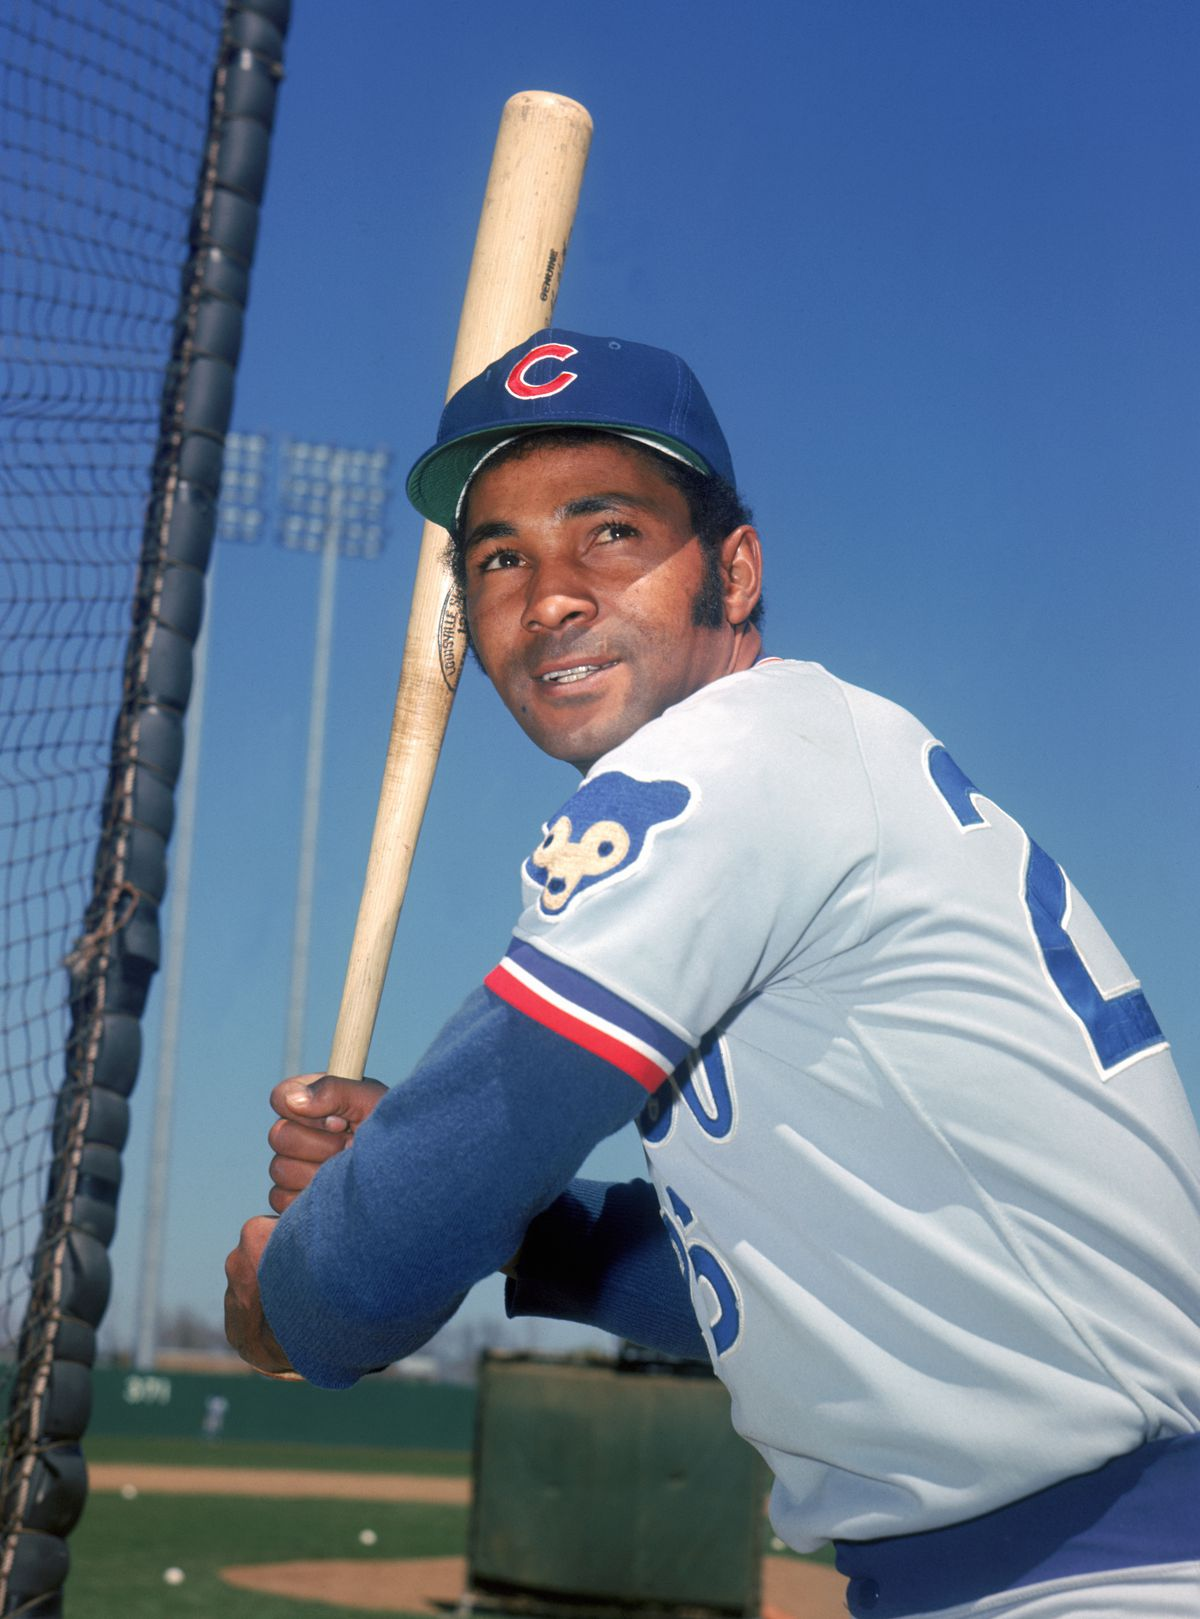 billy williams 1972 (Louis Requena/MLB Photos via Getty Images)